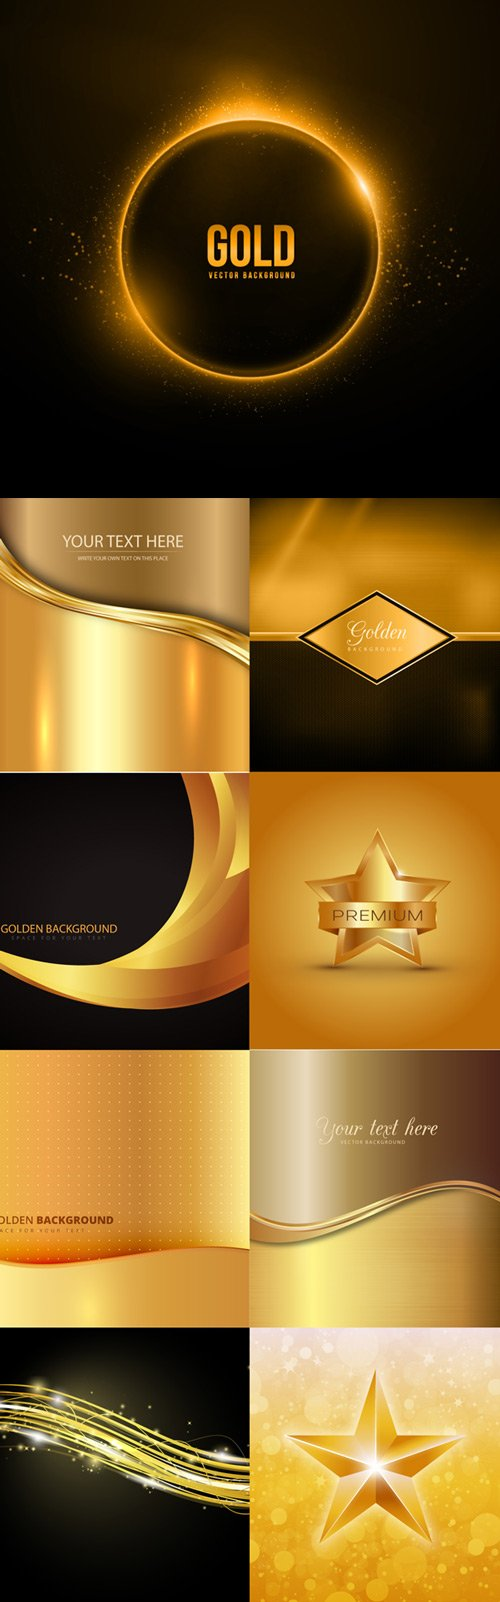 Gold stylish backgrounds vector graphics